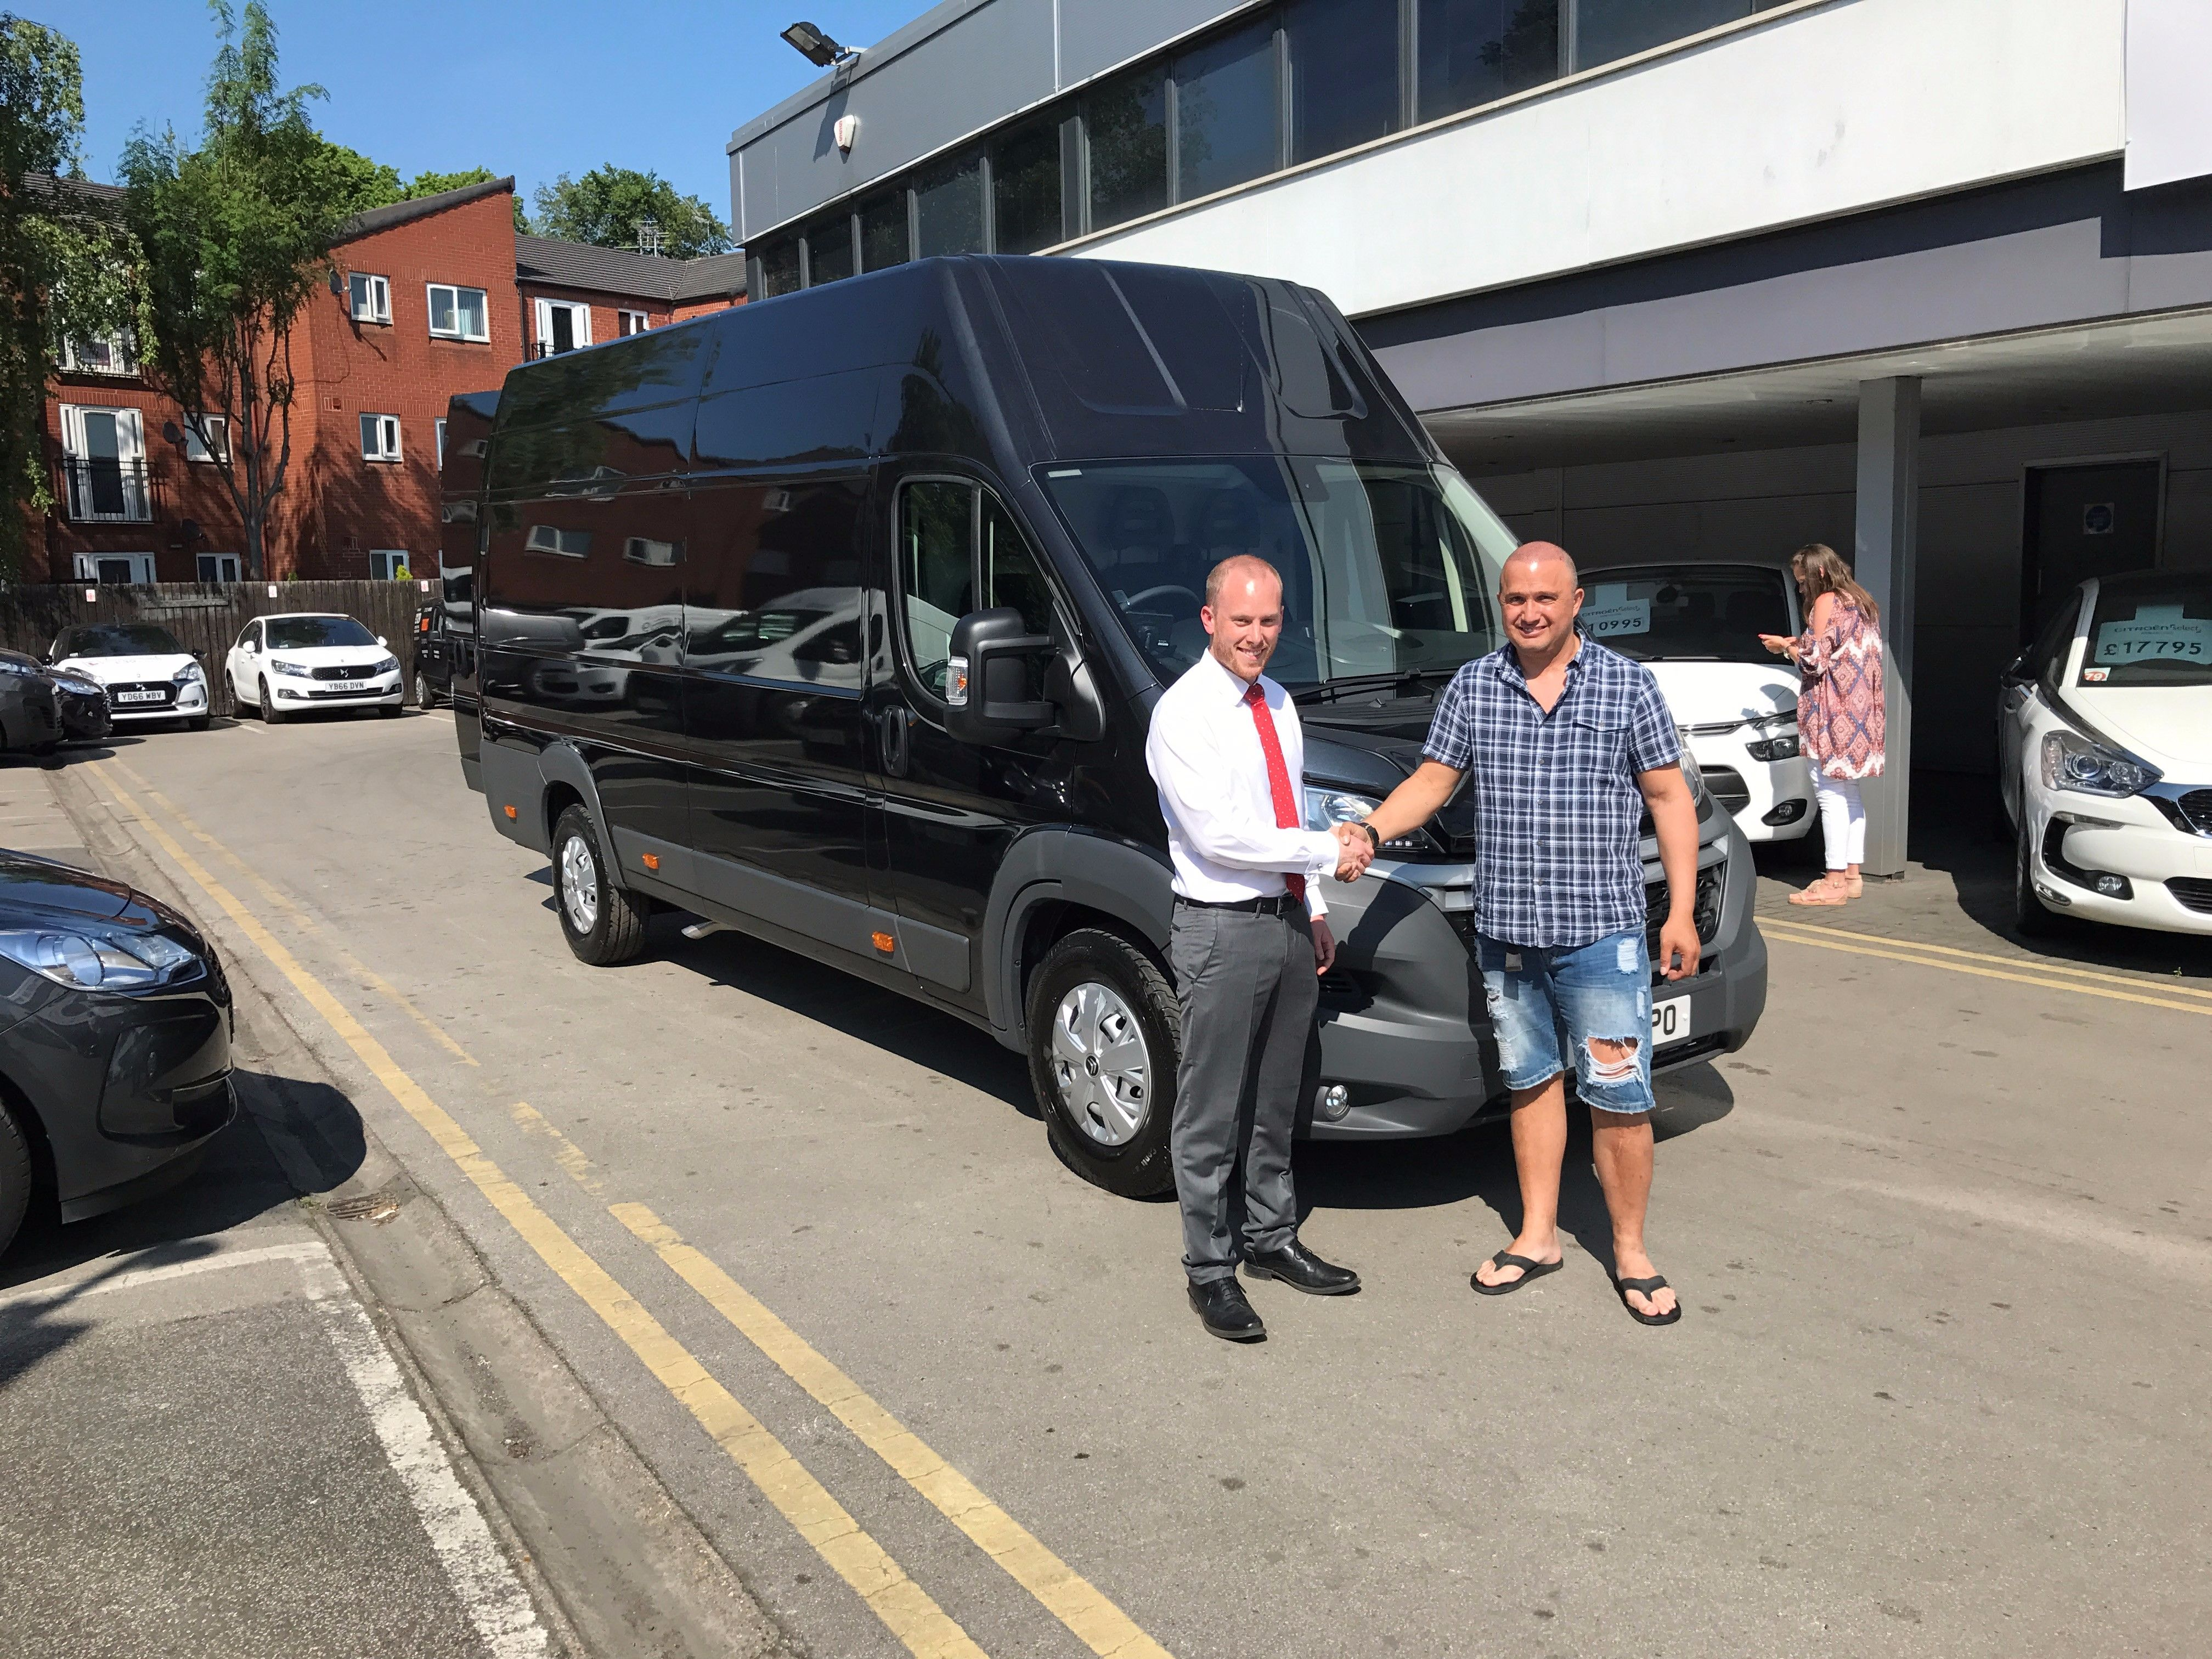 Gordon Parrott of Skytracker UK takes his 4th van in less than two years from SB Wakefield